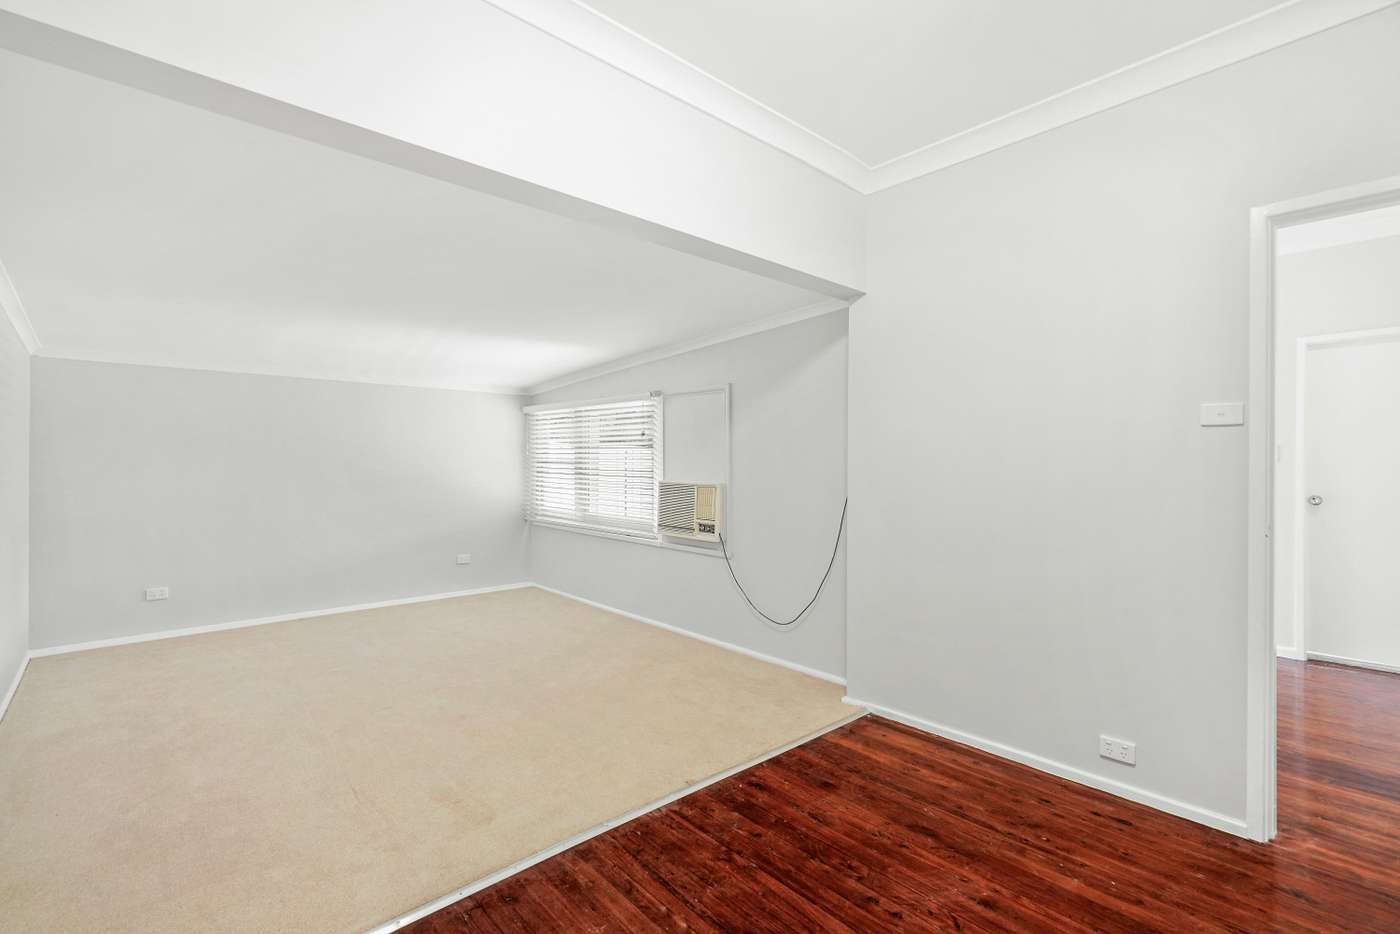 Sixth view of Homely house listing, 7 Mimosa Avenue, Saratoga NSW 2251